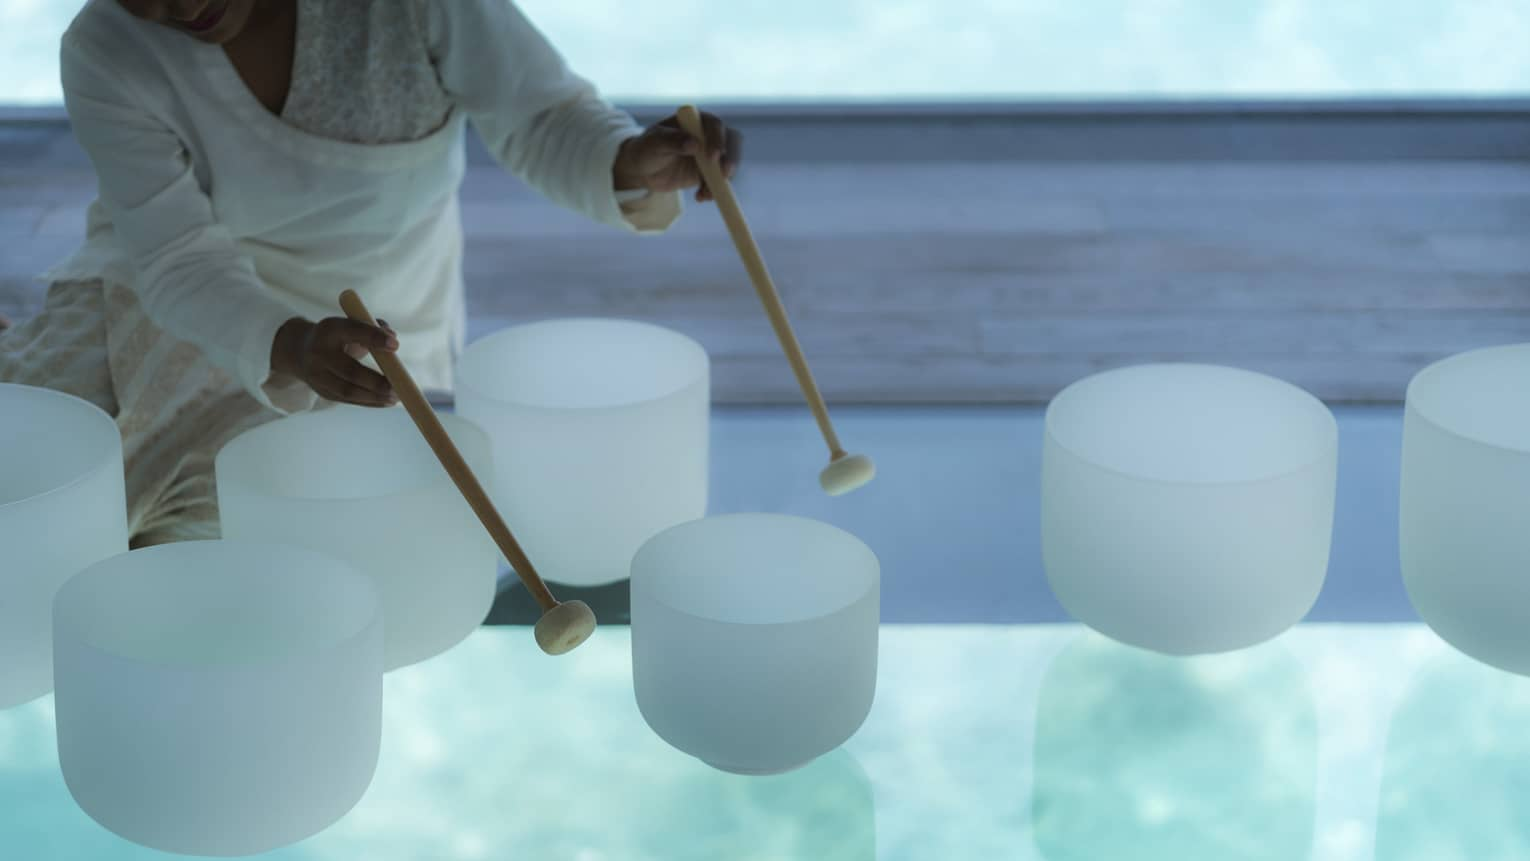 Spa staff plays various white crystal bowls with wood mallets during sound healing session